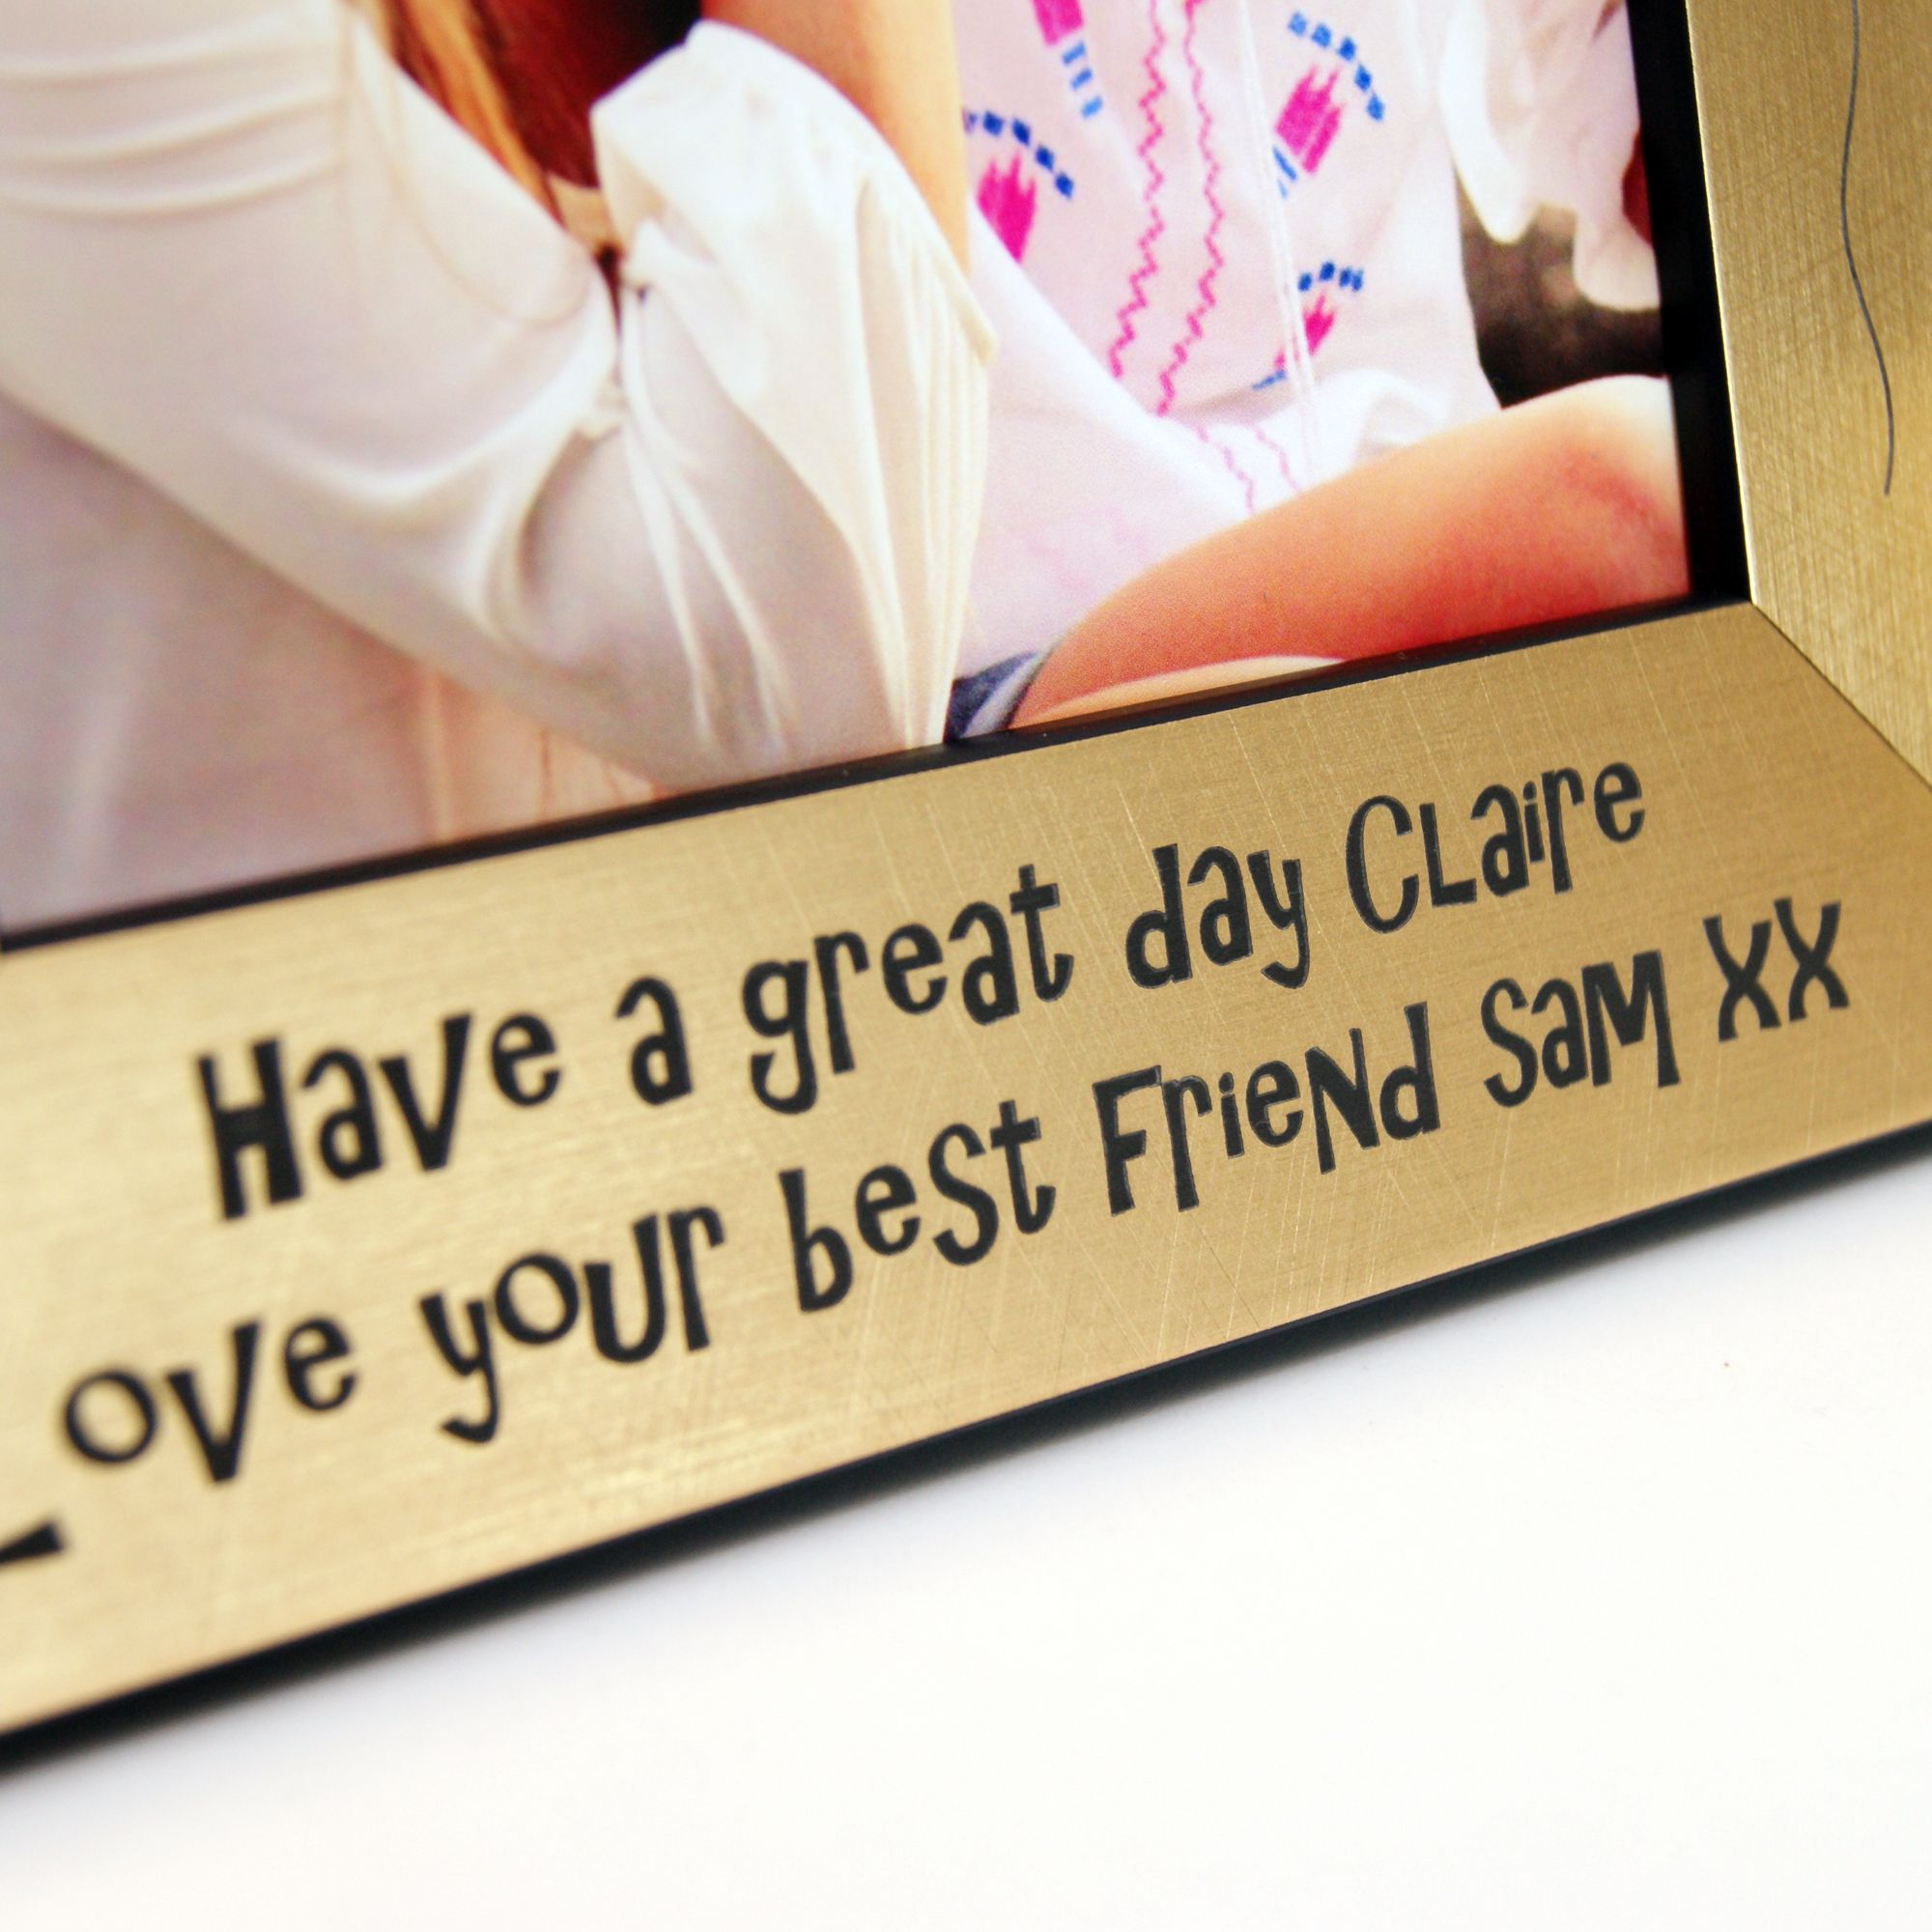 An engraved, personalised handmade photo frame to celebrate a milestone 16th birthday! The birthday guy or gal is sure to love unwrapping this truly thoughtful present, featuring intricately detailed engravings of balloons and stars! Each frame comes with **Sixteen** engraved at the top. You can also further personalise your frame with 2 lines of special text, which will be engraved at the bottom (We recommend a maximum of 5-6 words). Our frames are designed, assembled and engraved in our Edinbu